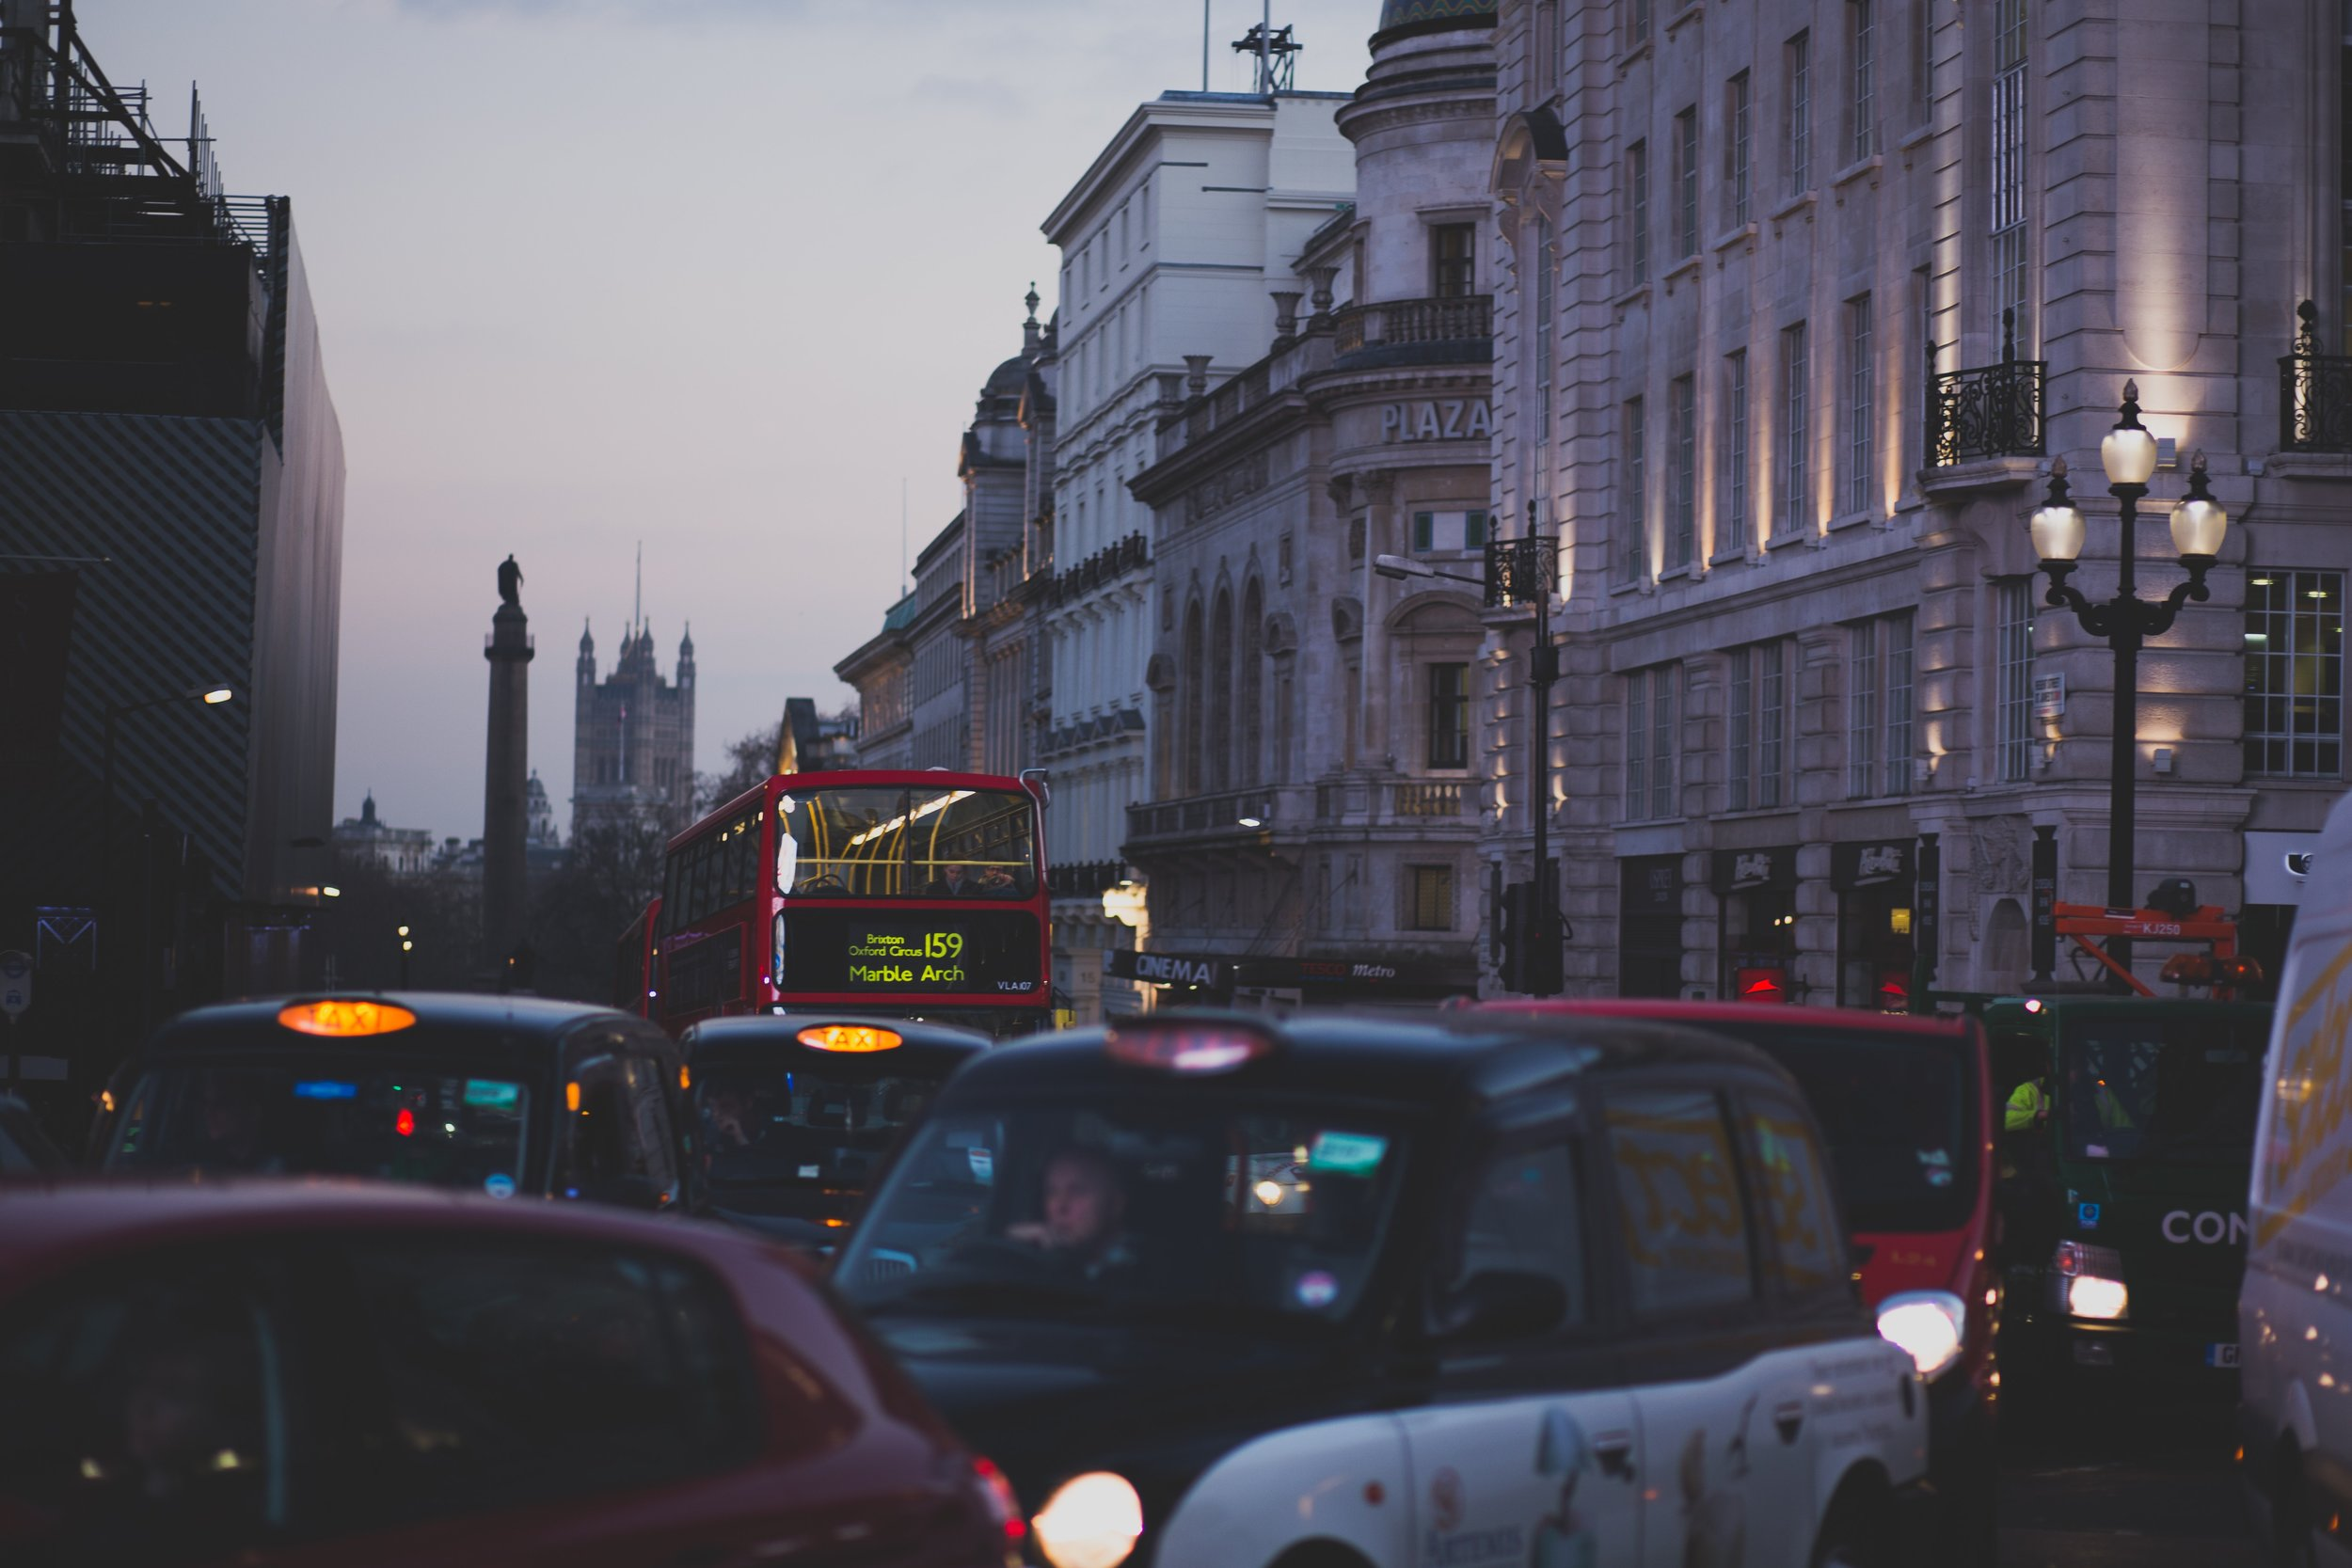 There are 2.56 million licensed cars in London.